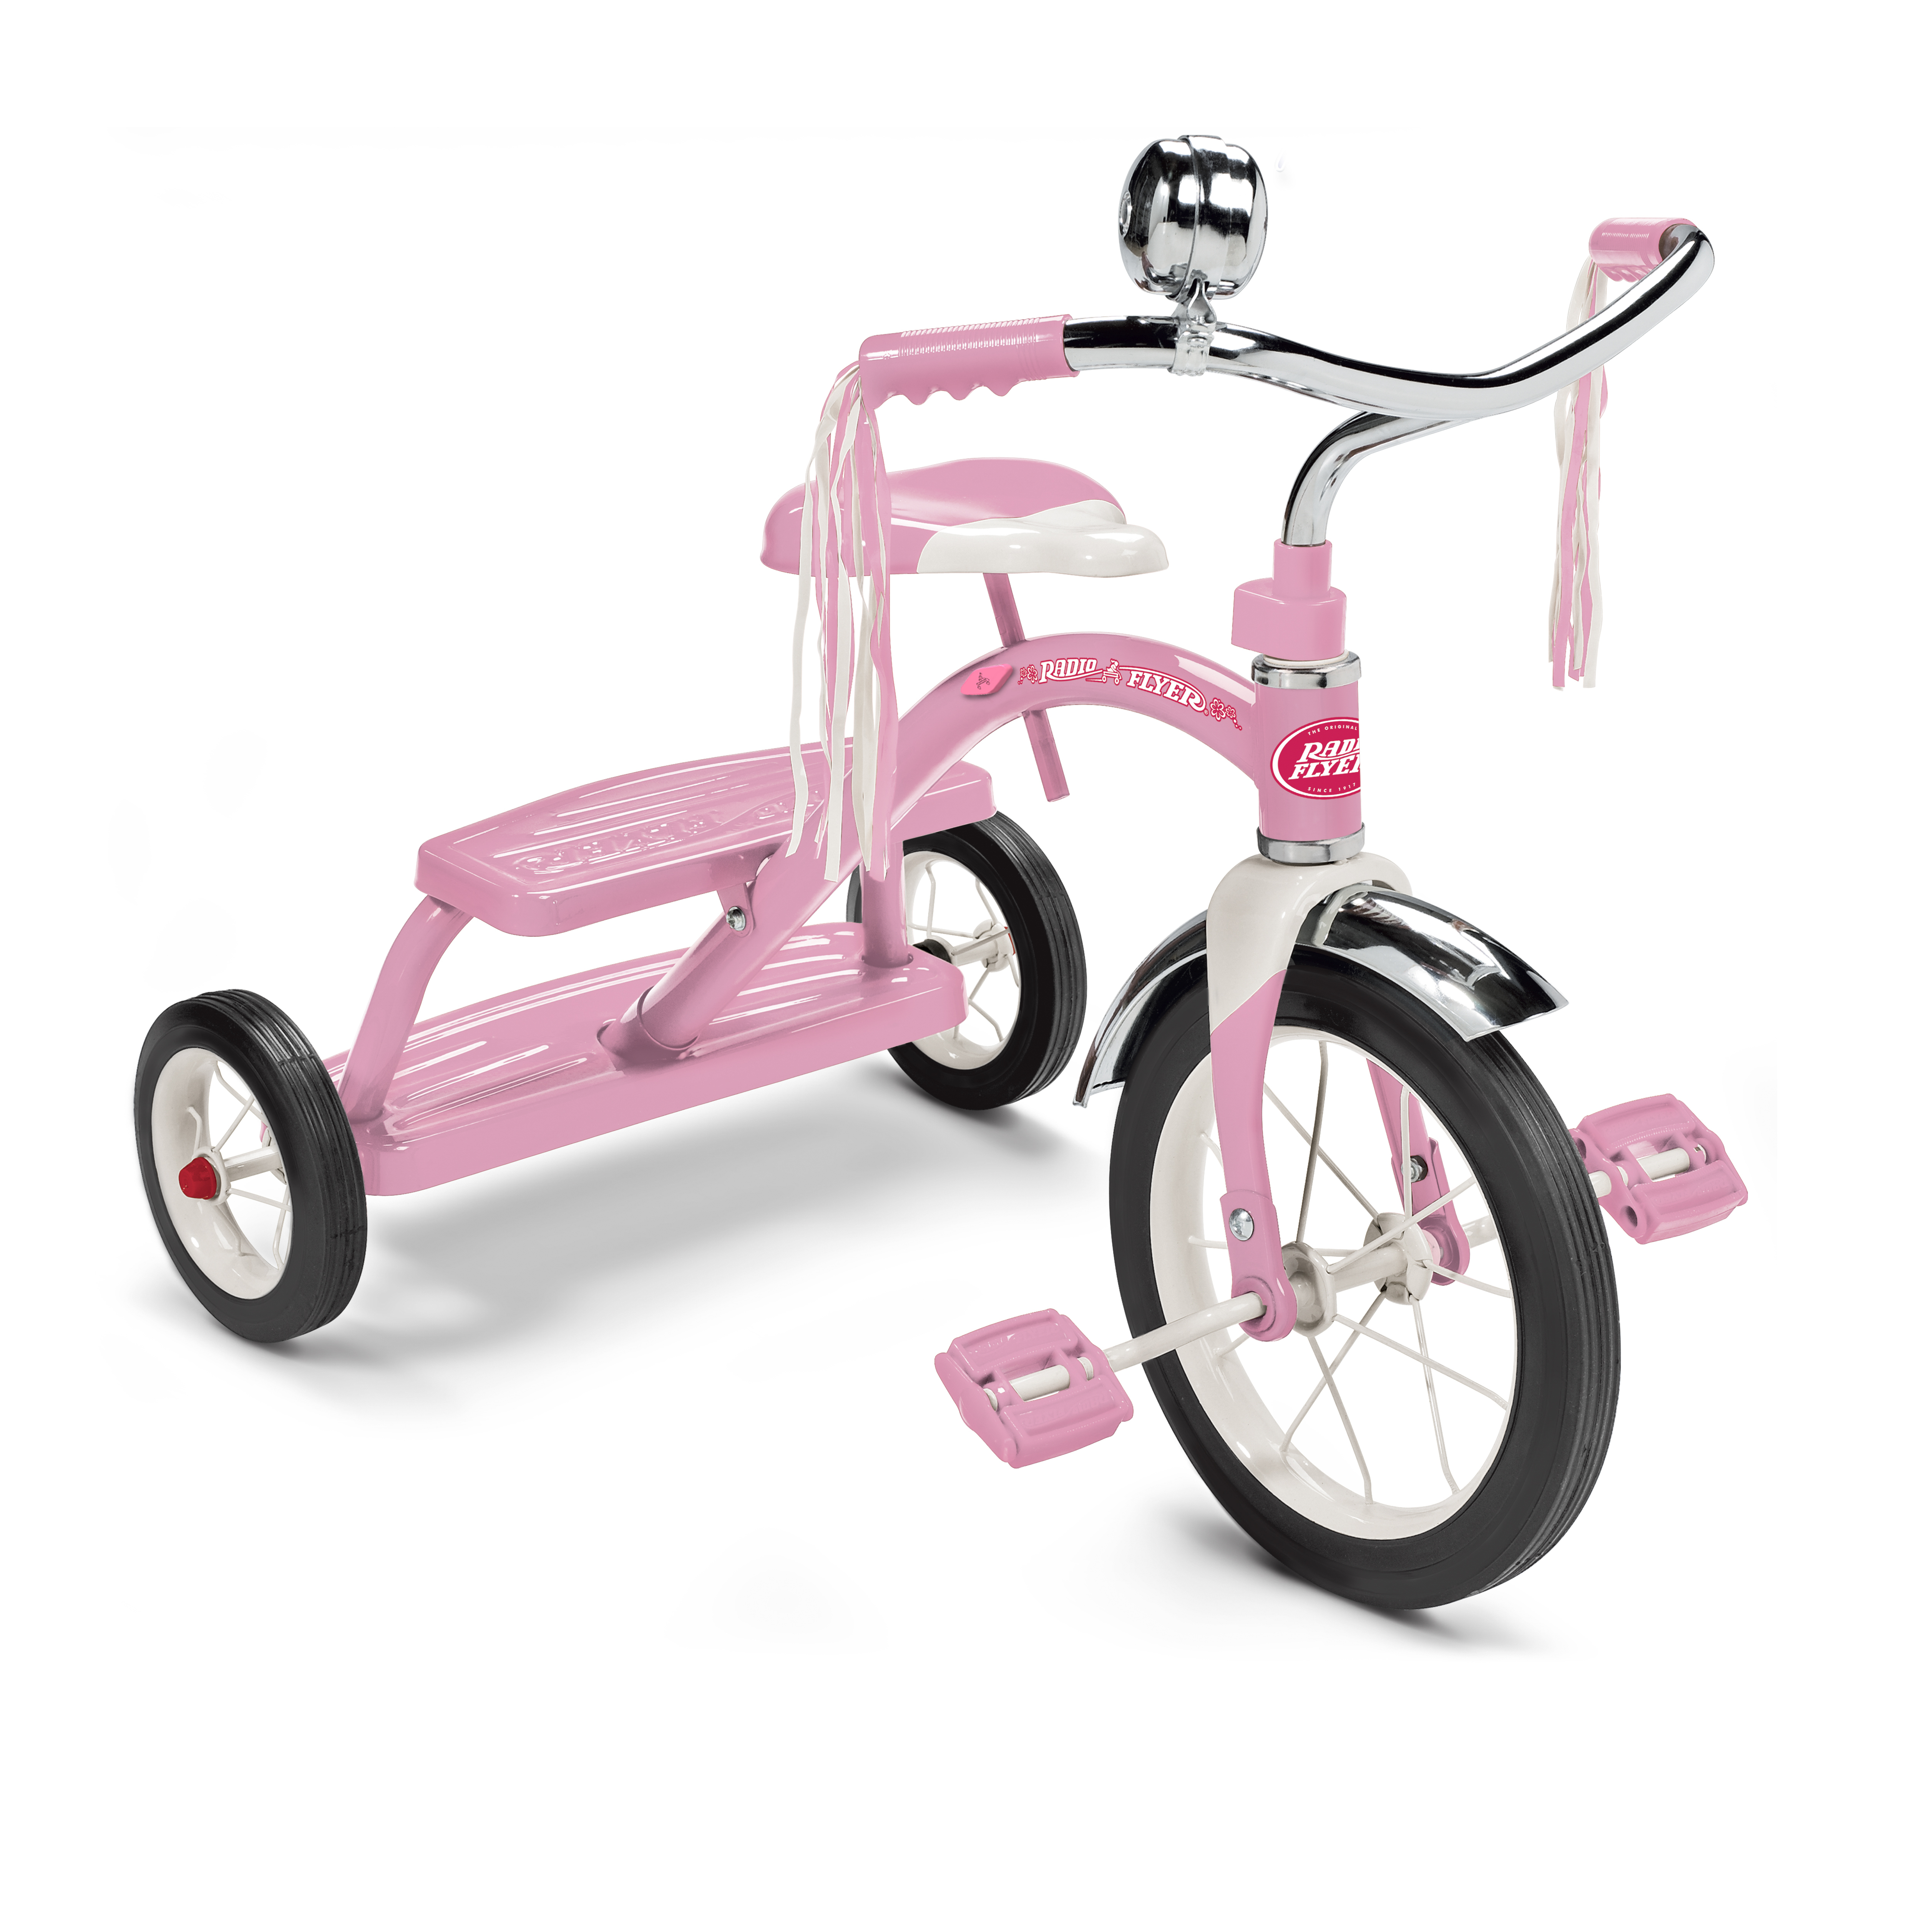 Radio Flyer Classic Dual-Deck Tricycle